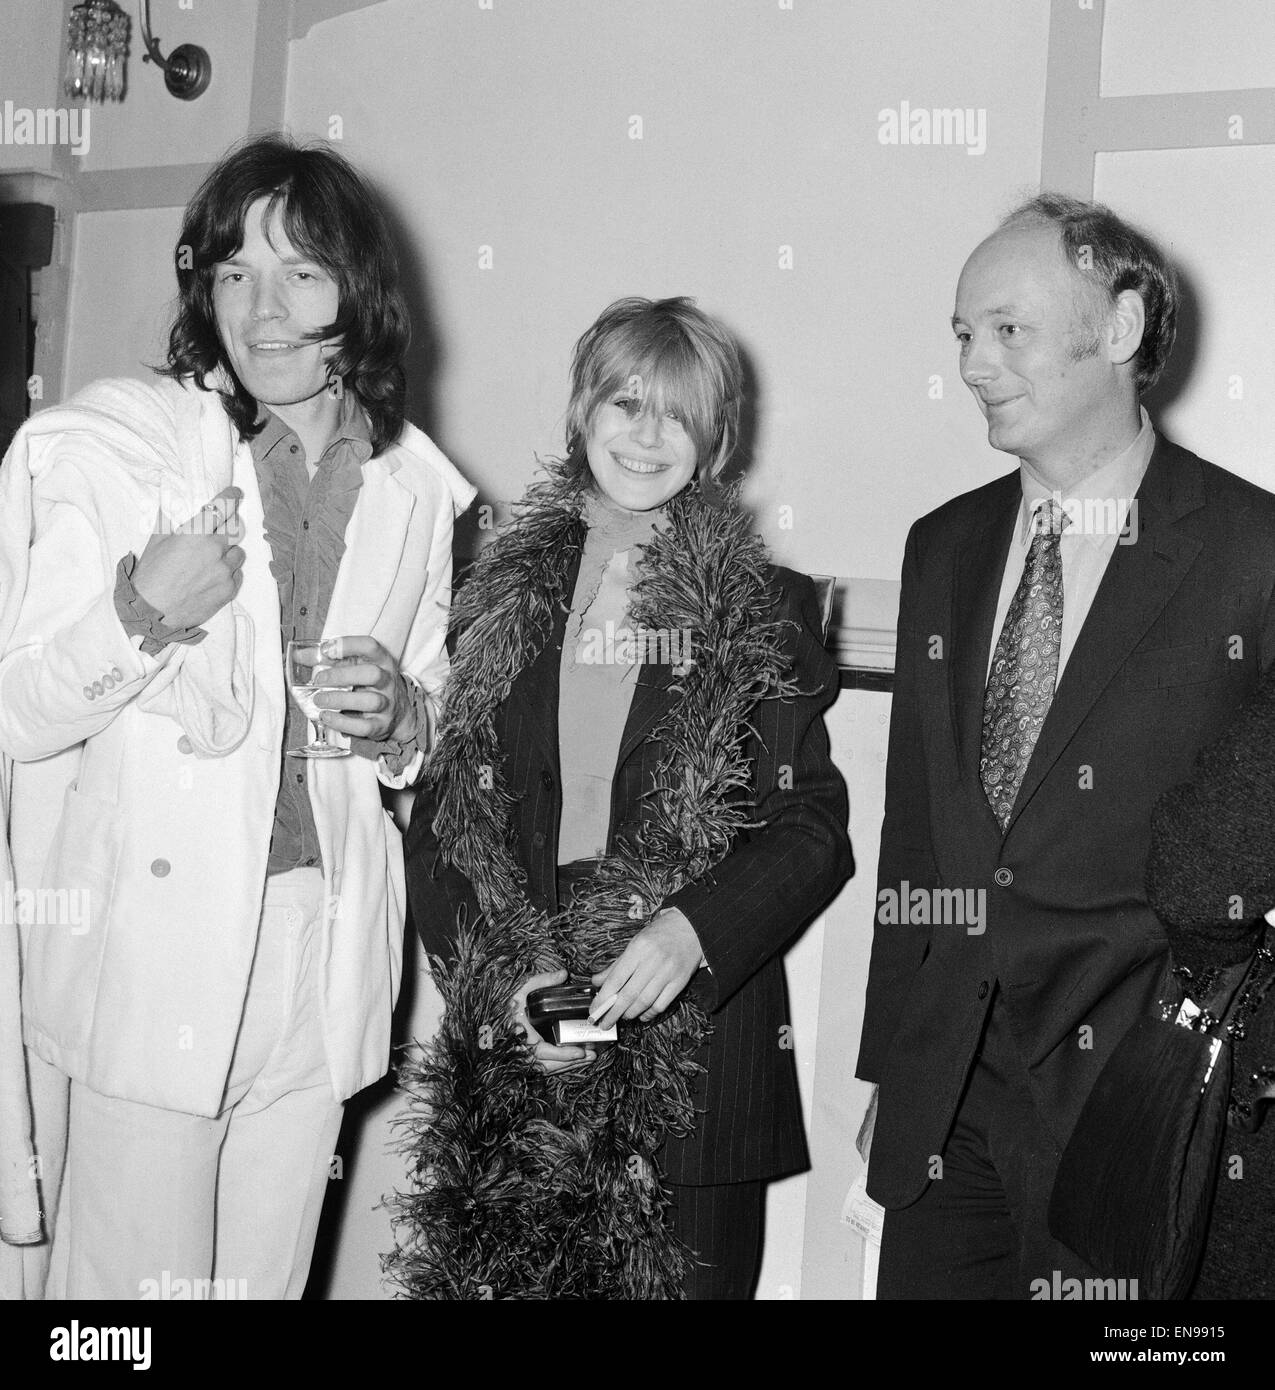 Mick Jagger and Marianne Faithfull talking to Lord and Lady Montagu at the premiere of the musical 'Hair'. - Stock Image